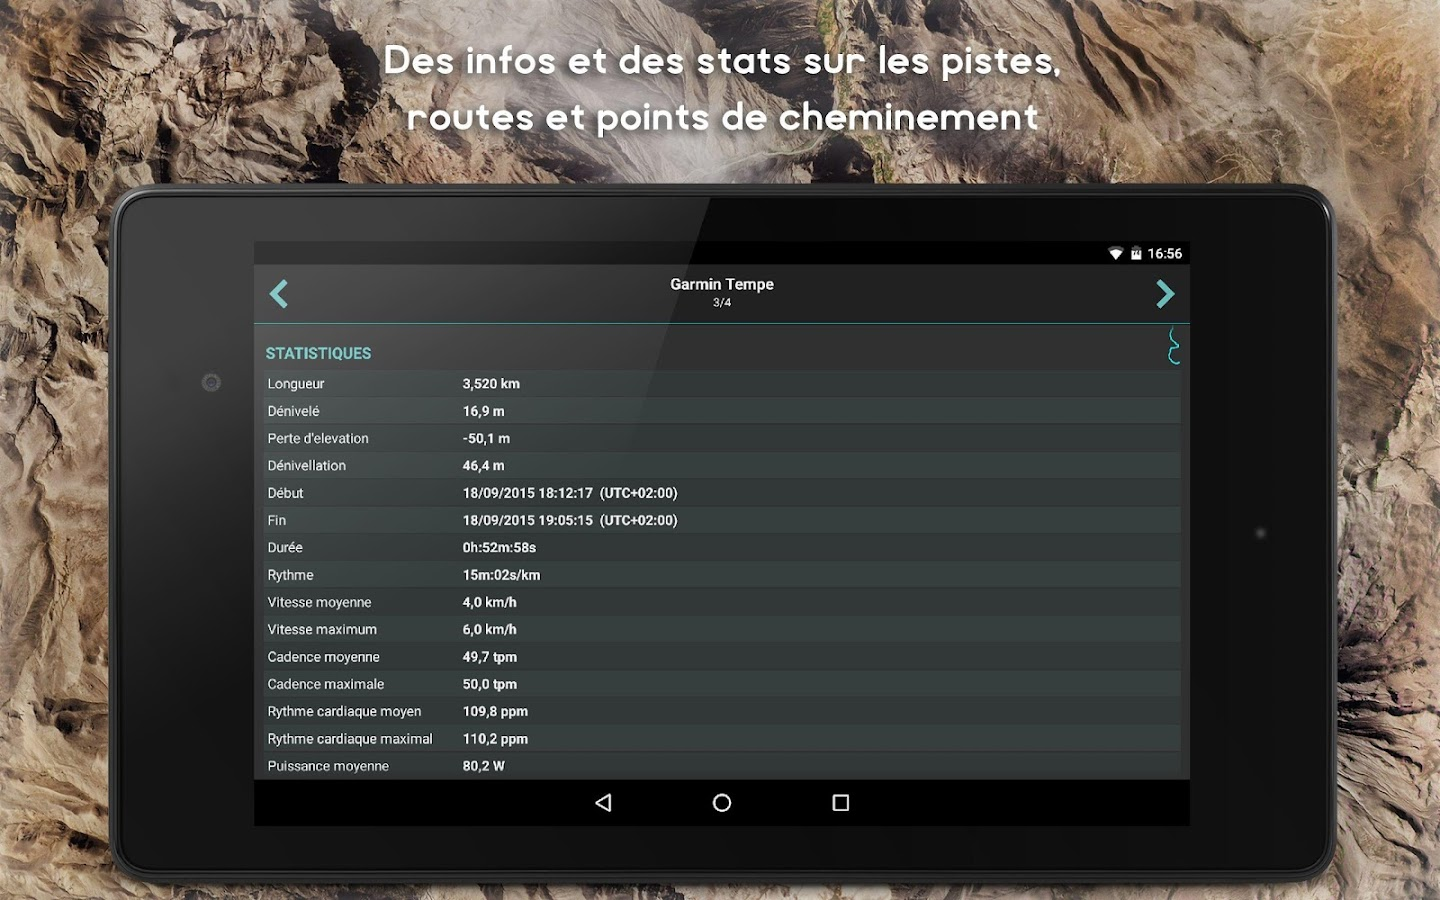 GPX Viewer - Pistes, routes et points – Capture d'écran